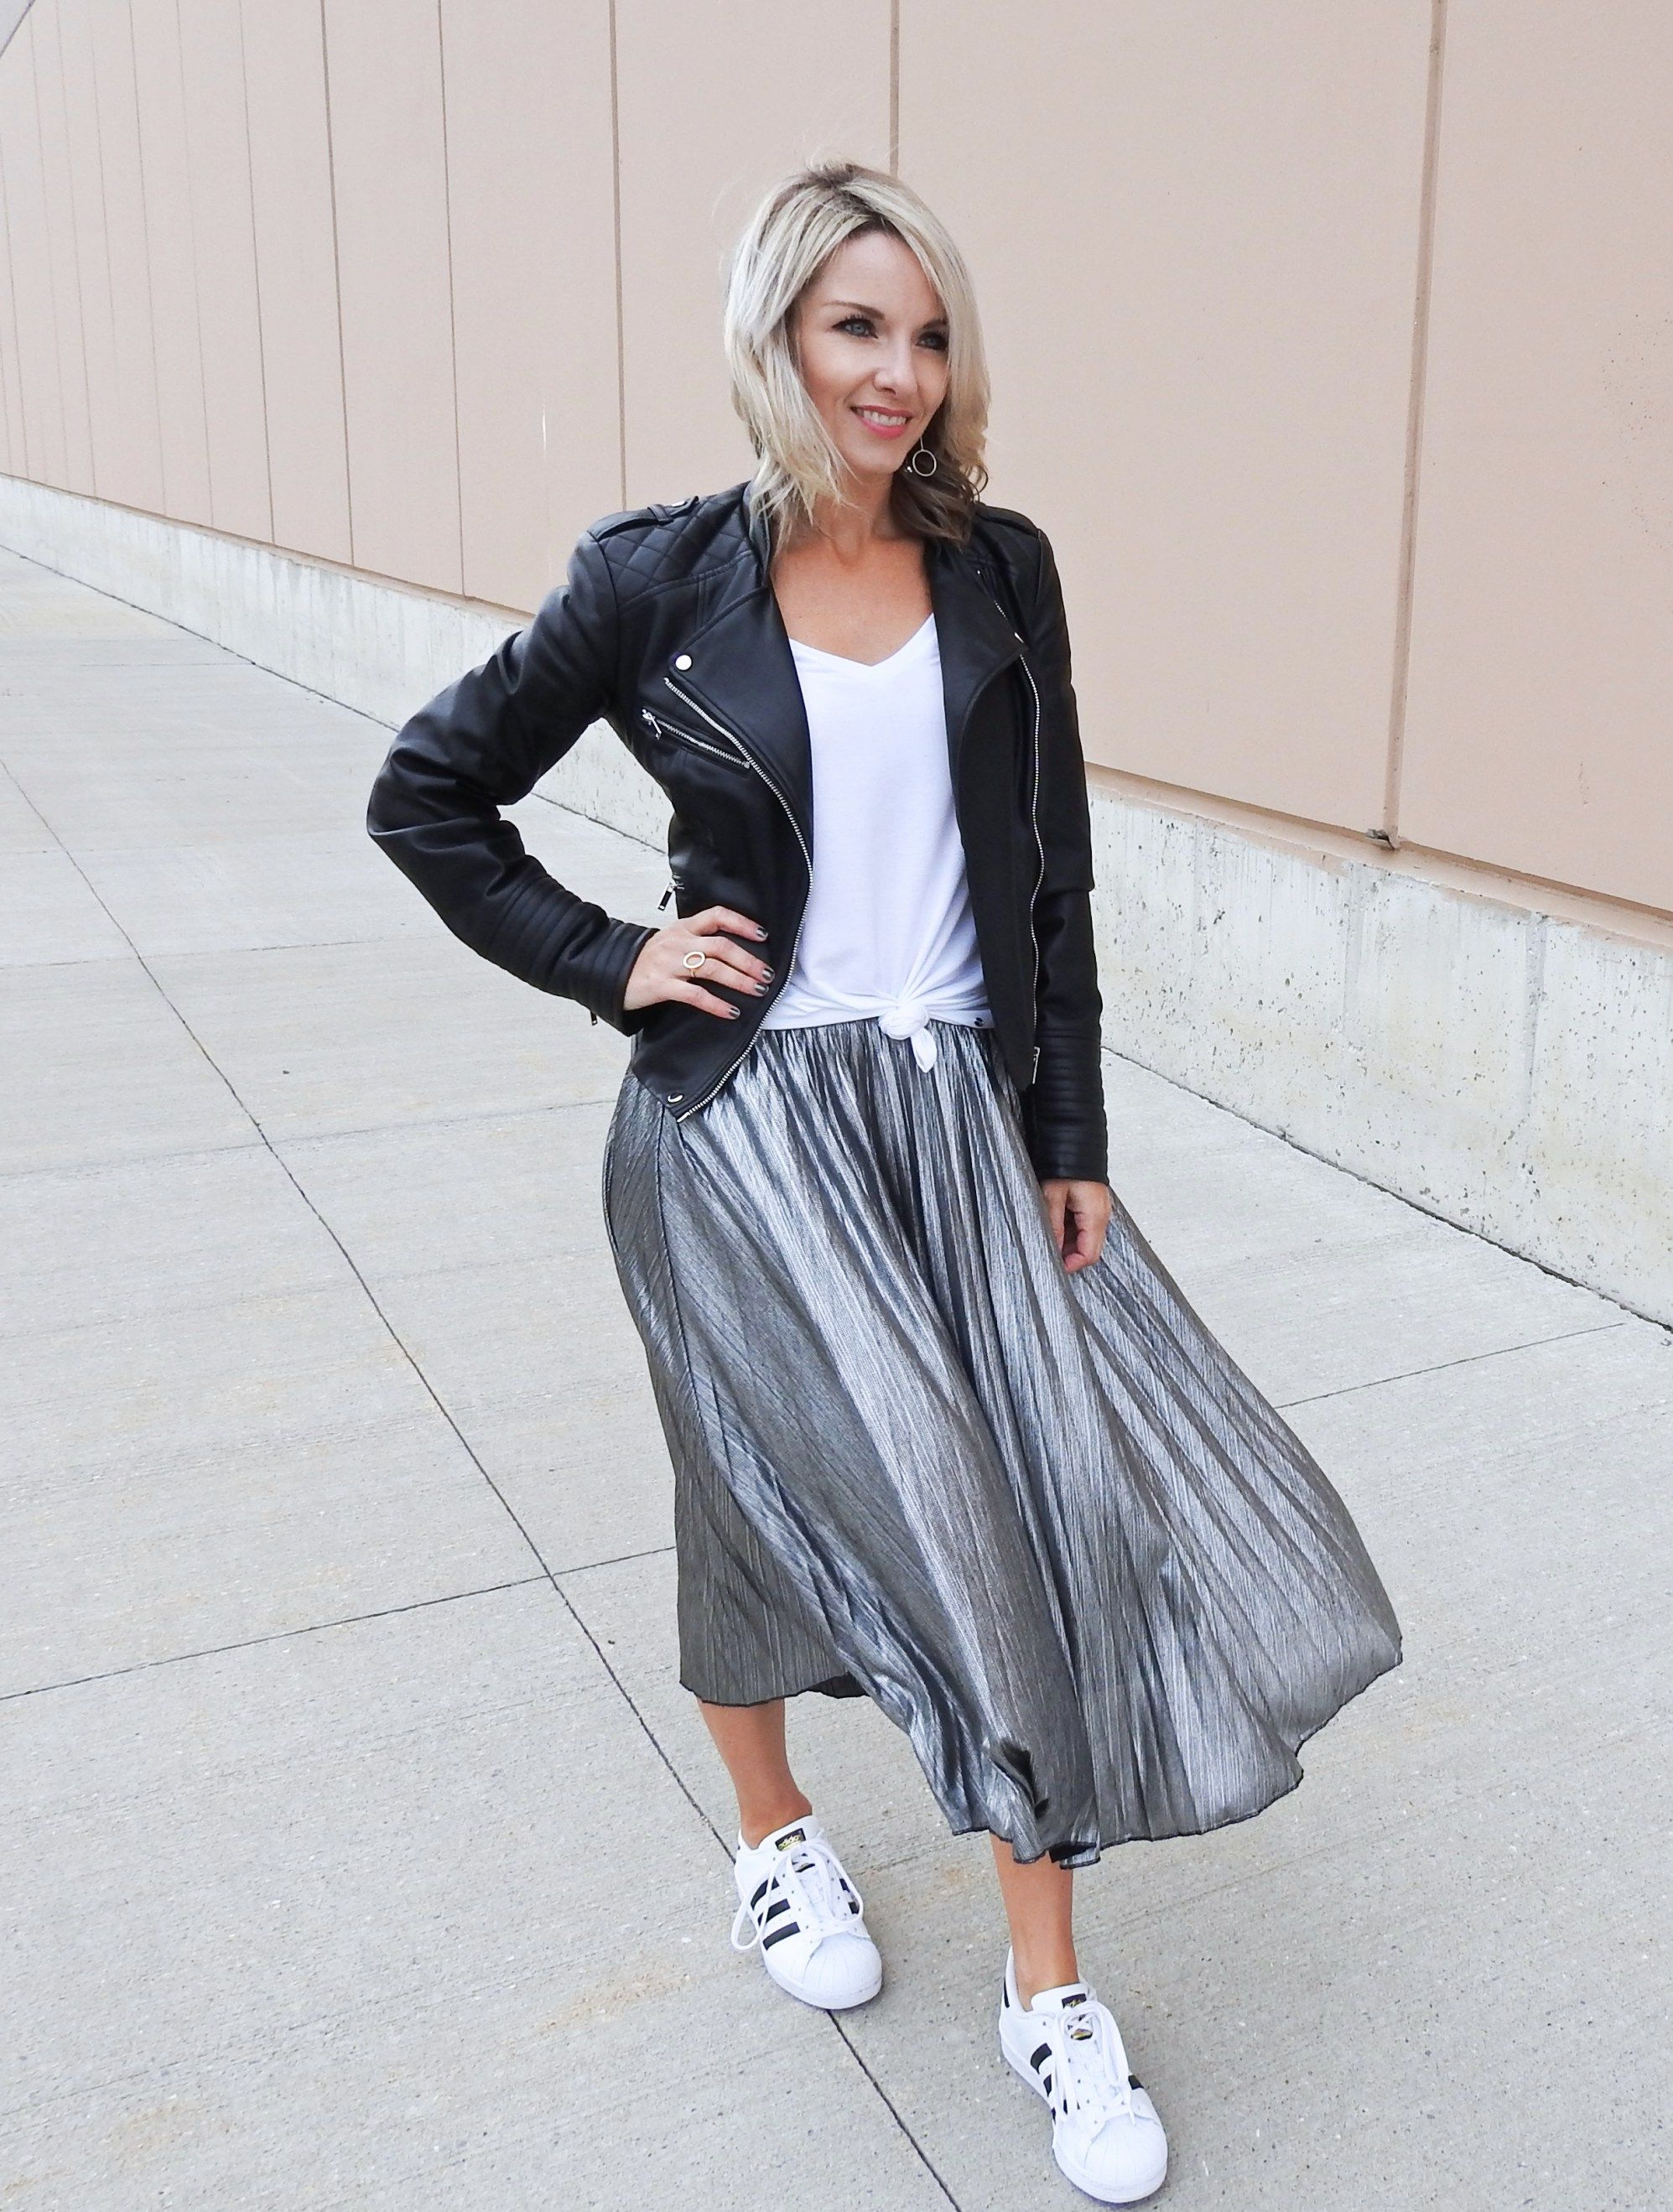 bd2e0ed55498 Black leather jacket moto, silver pleated midi skirt, black suede pumps,  Adidas superstars, white tee, tiaras and heels blog